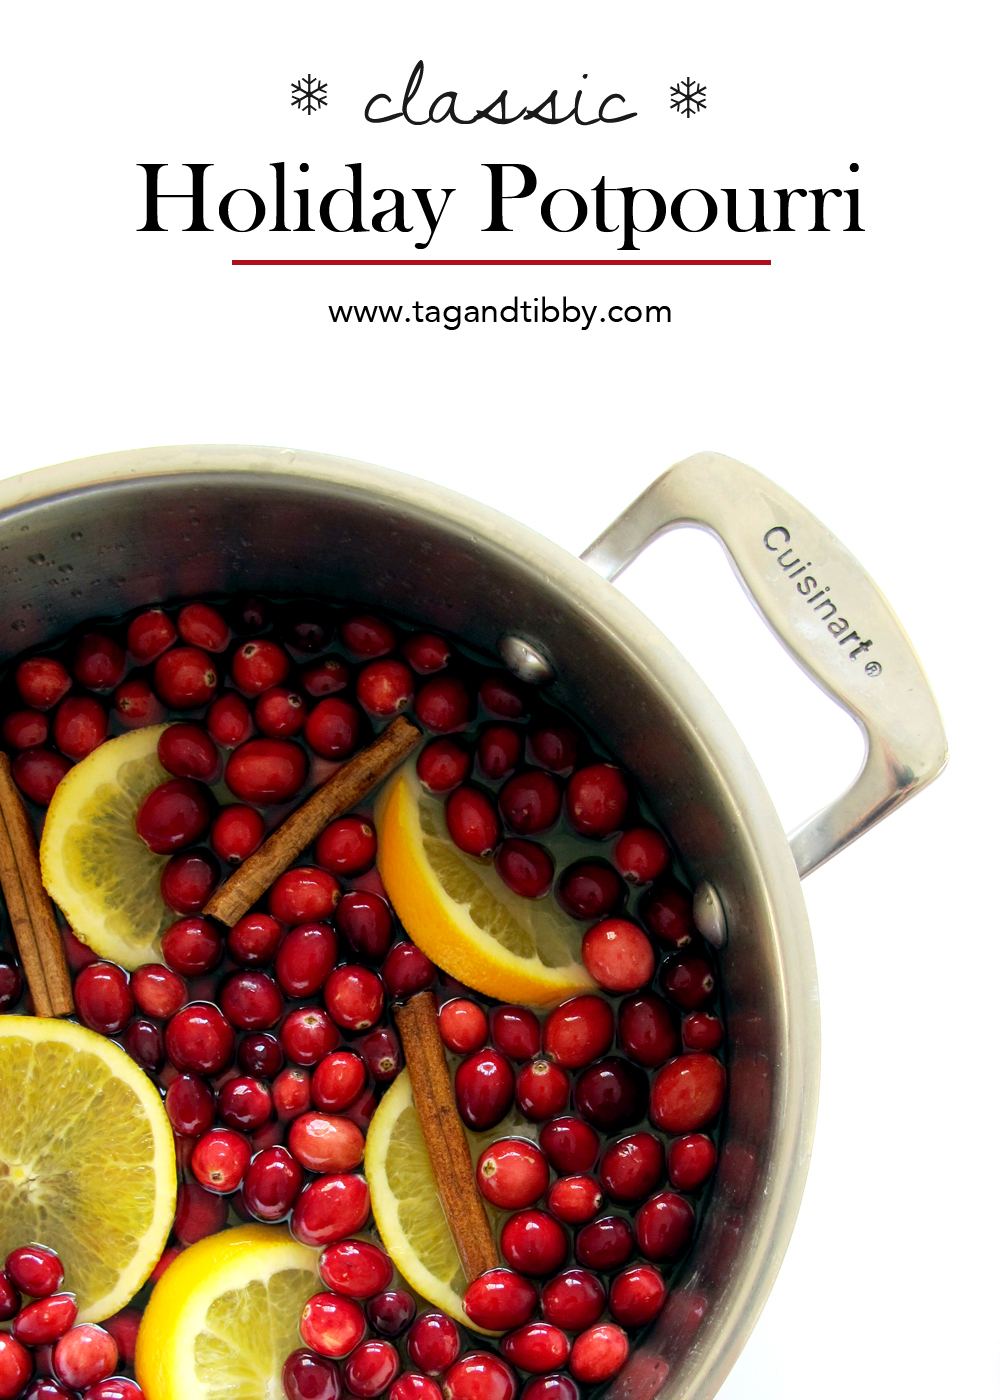 make your home smell like Christmas for under $10! a classic holiday potpourri recipe